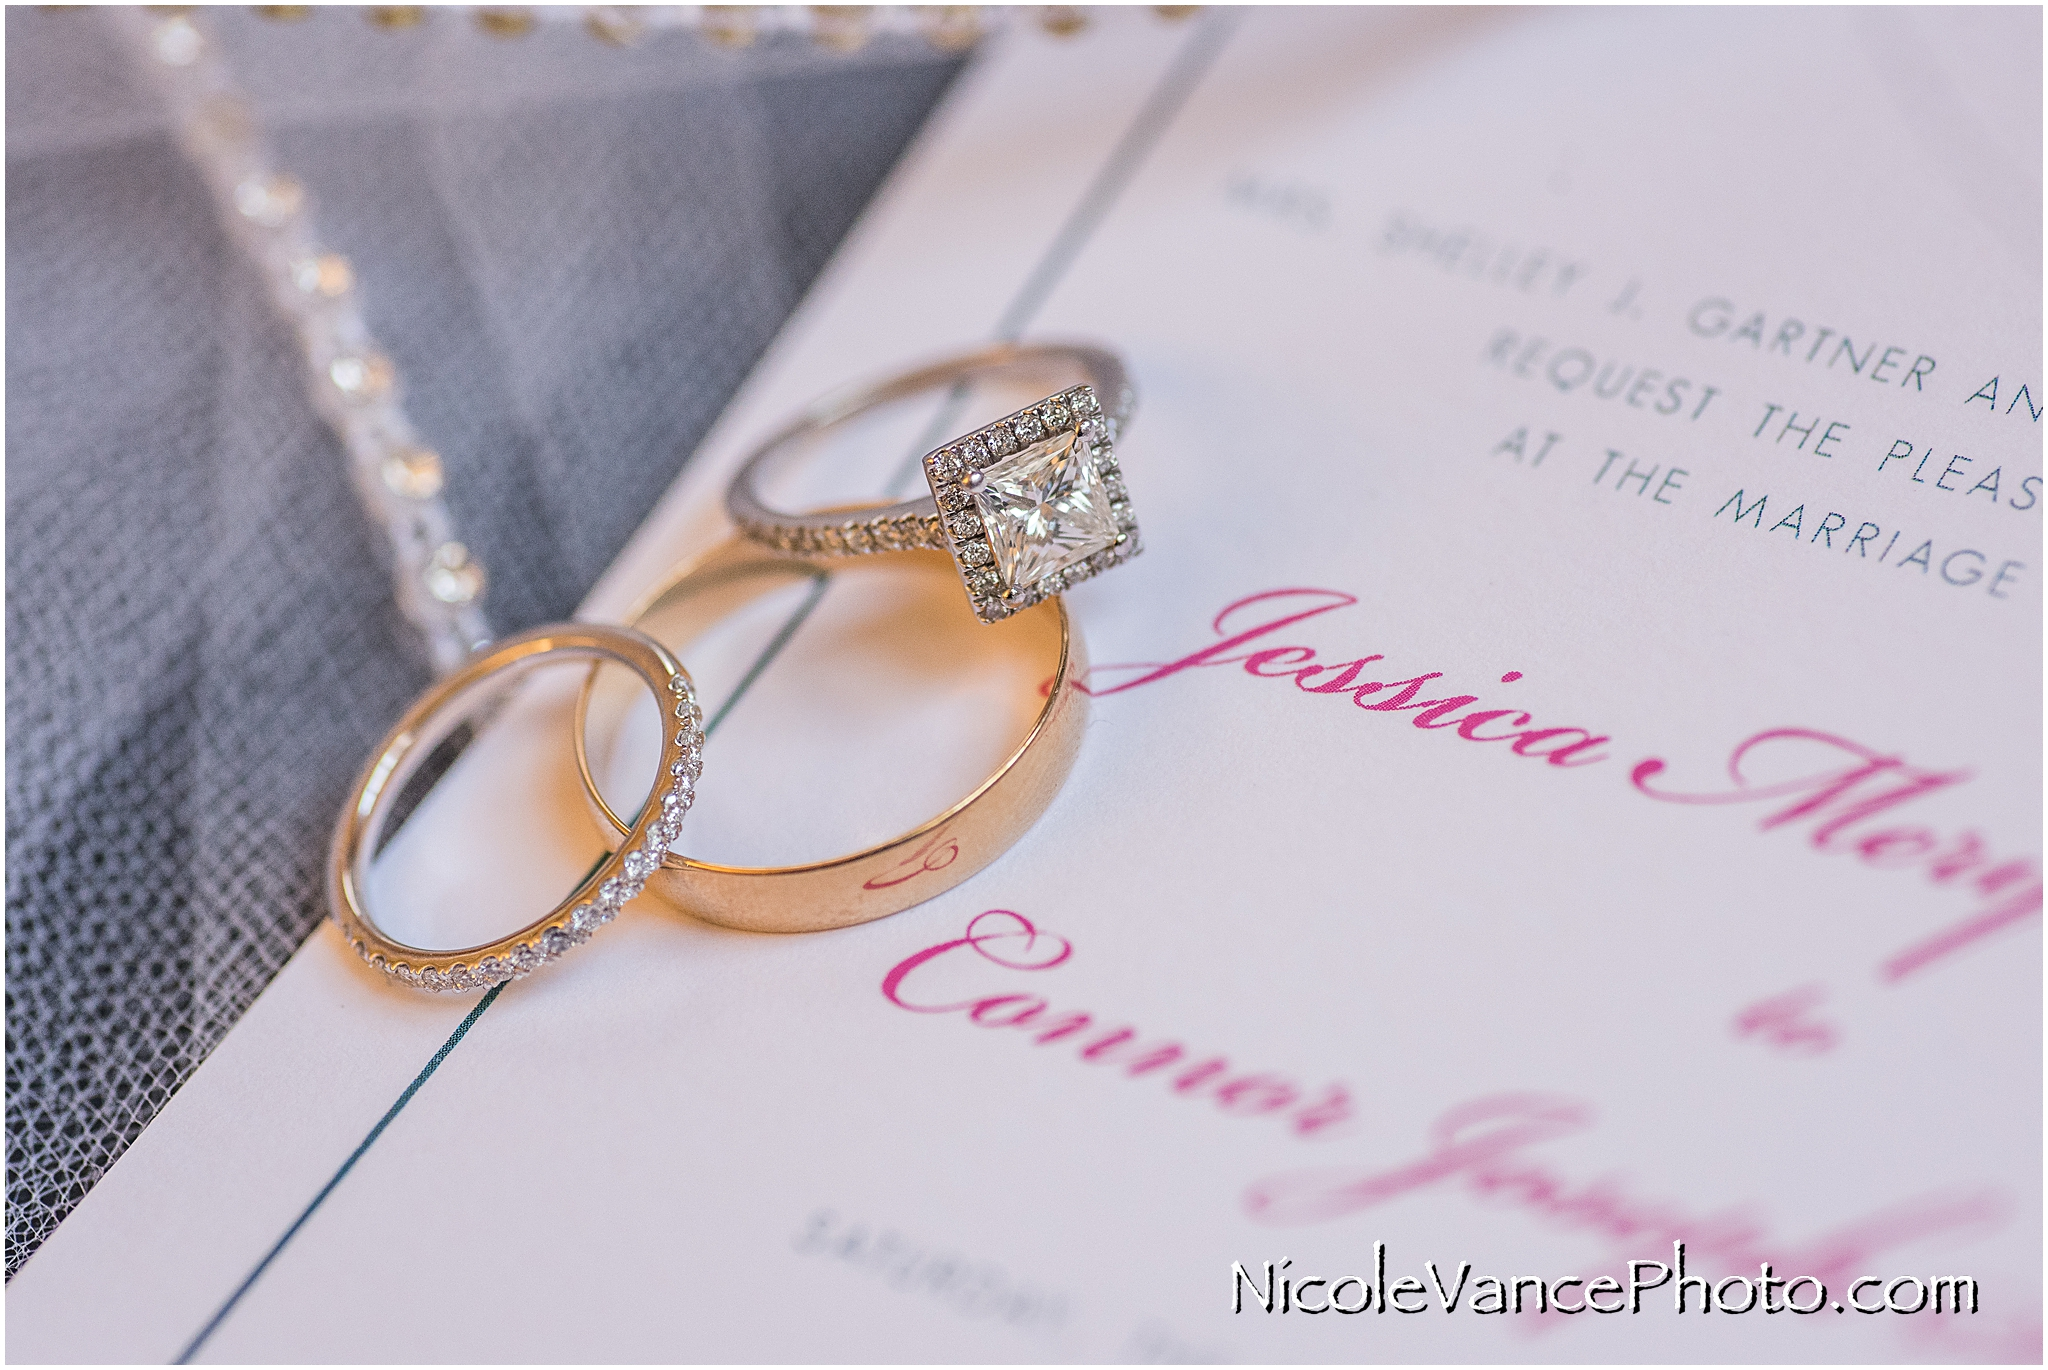 Wedding rings displayed with wedding invitation, made by English Tea Paperie.